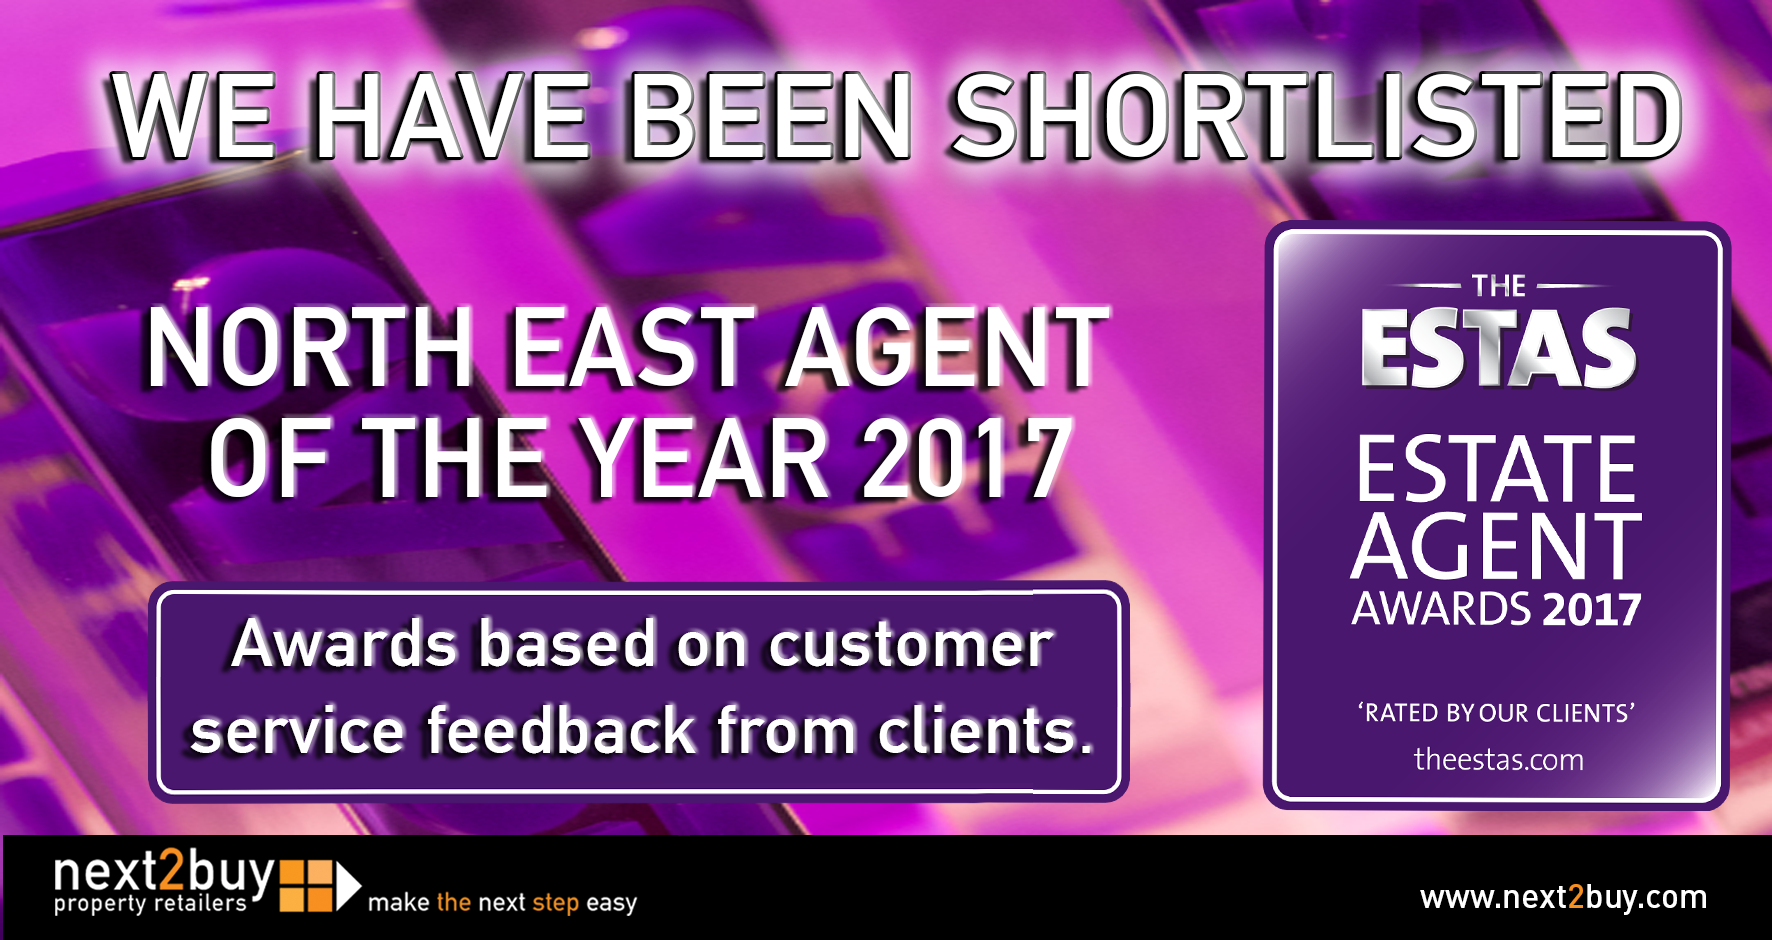 WE HAVE BEEN SHORTLISTED